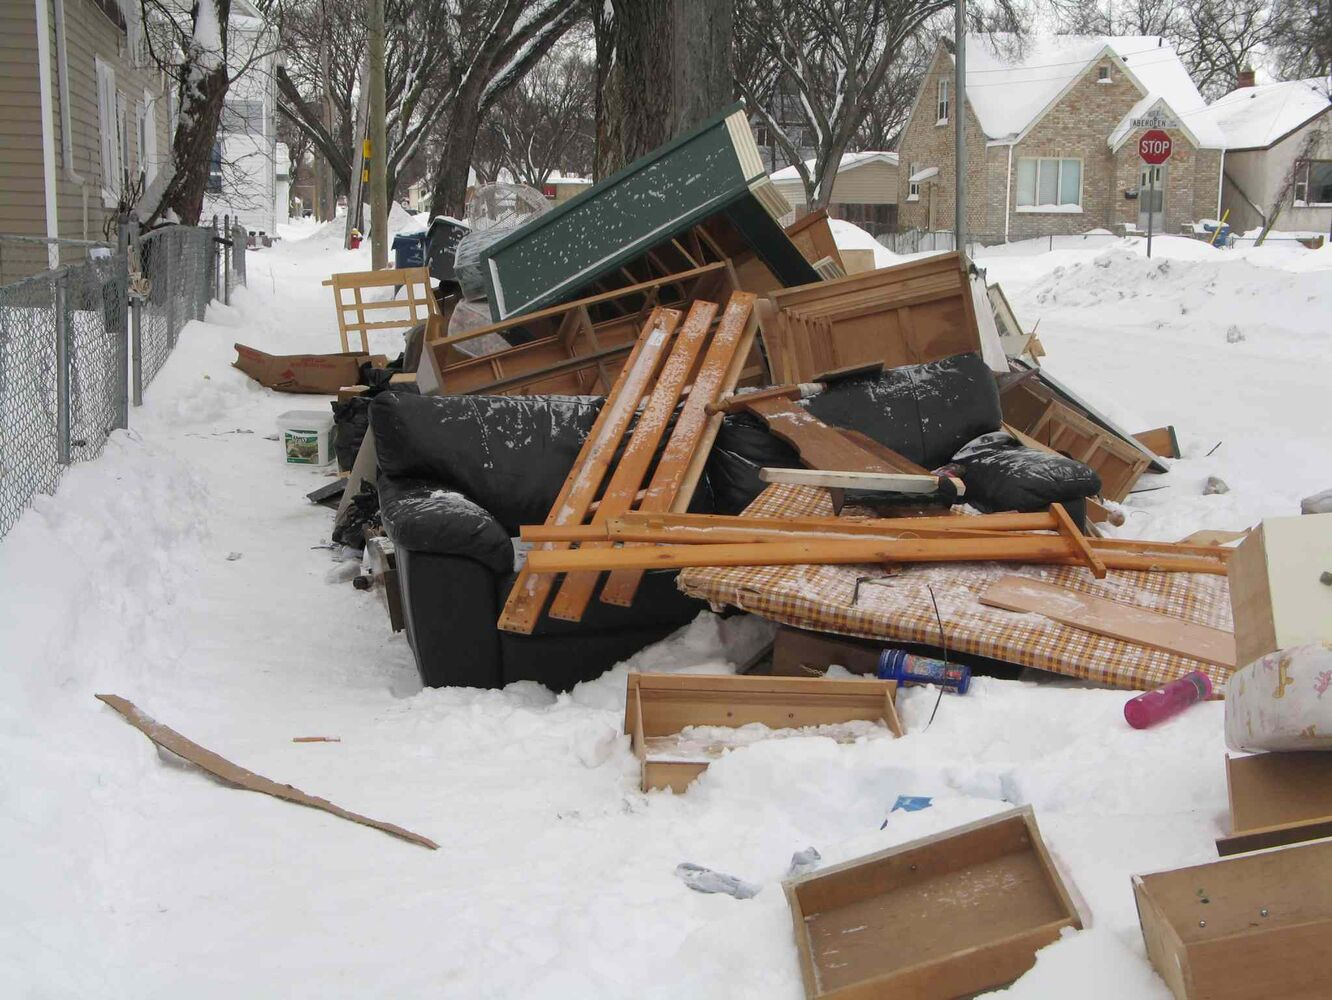 A pile of furniture and garbage on the sidewalk of Andrews Street, near Aberdeen Avenue. COPP documented the situation, with the intention of calling it into 311 upon returning to the William Whyte Residents Assocation office. (Jared Story)